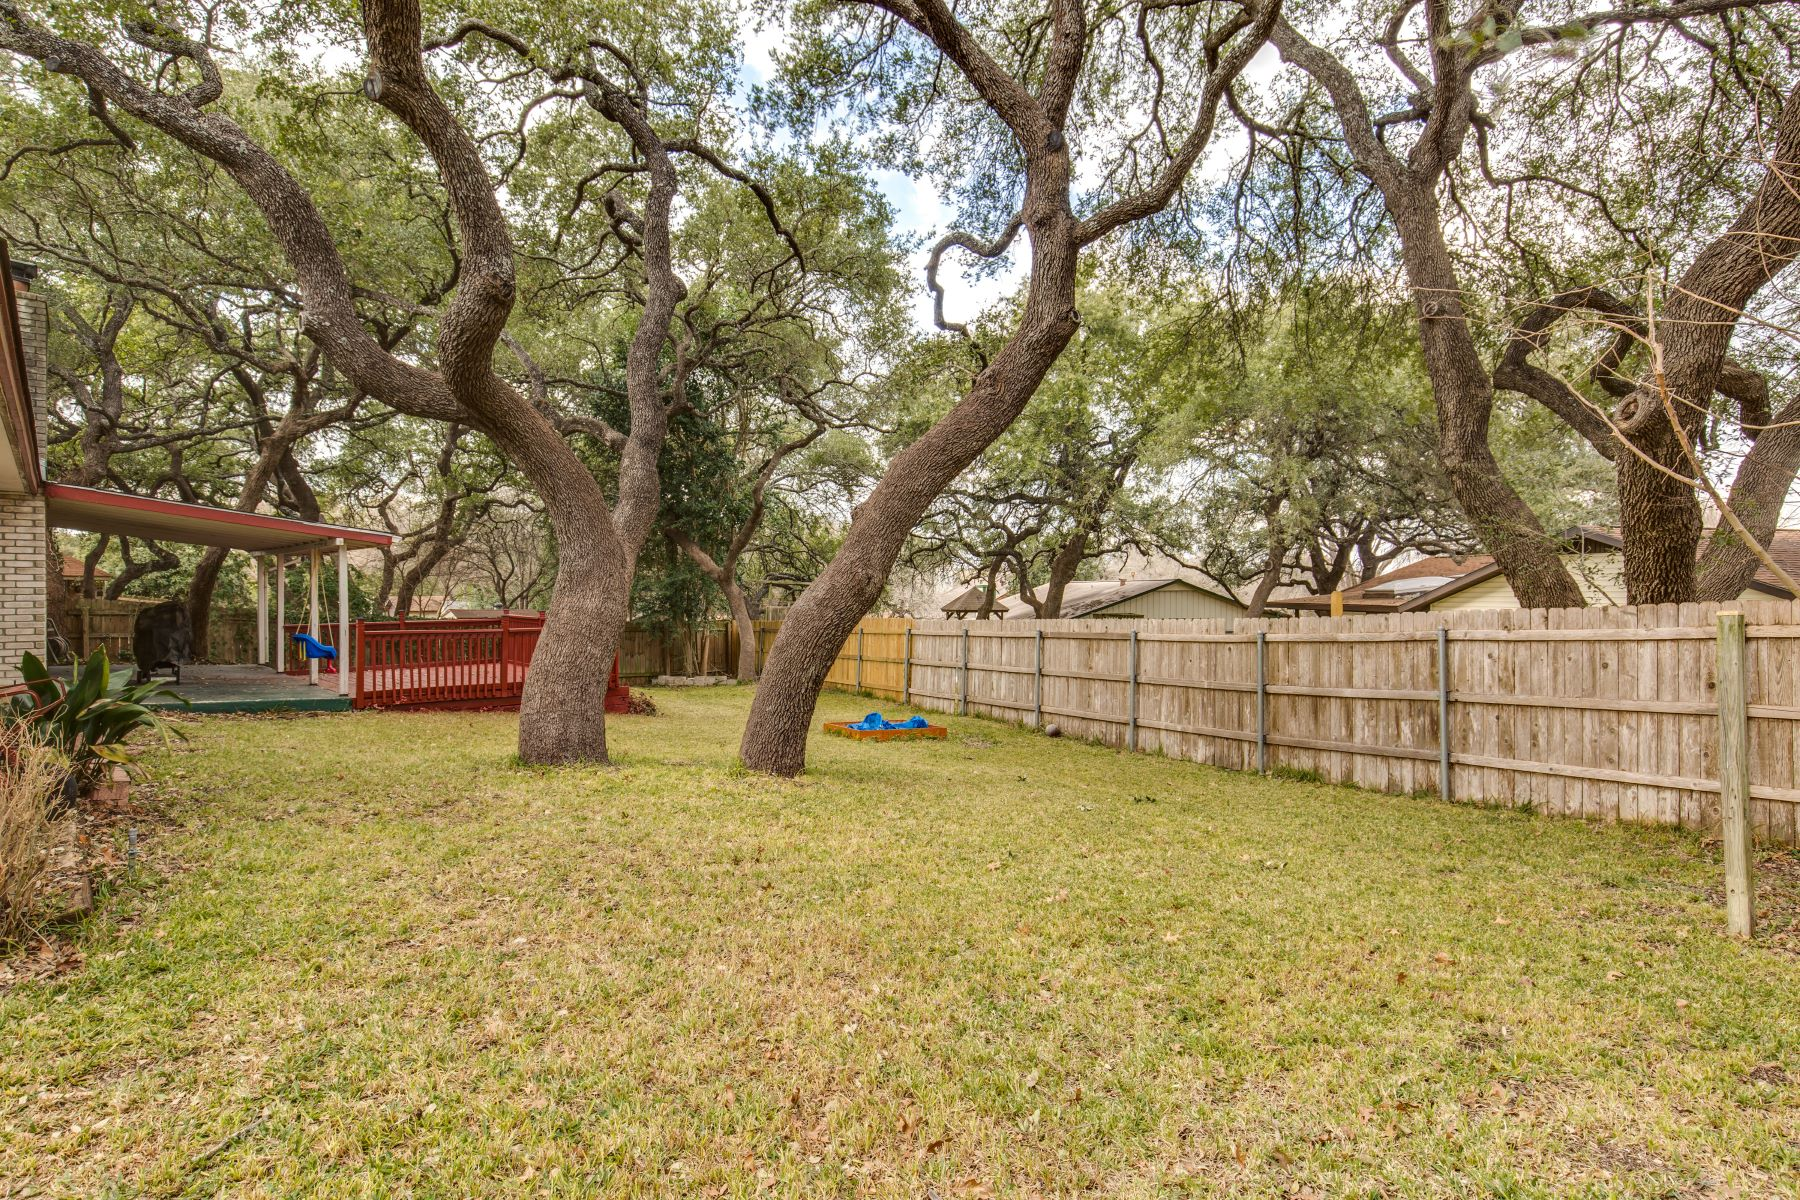 Additional photo for property listing at Spacious Single Story Home in Fox Run 6419 Indian Path Street San Antonio, Texas 78247 United States